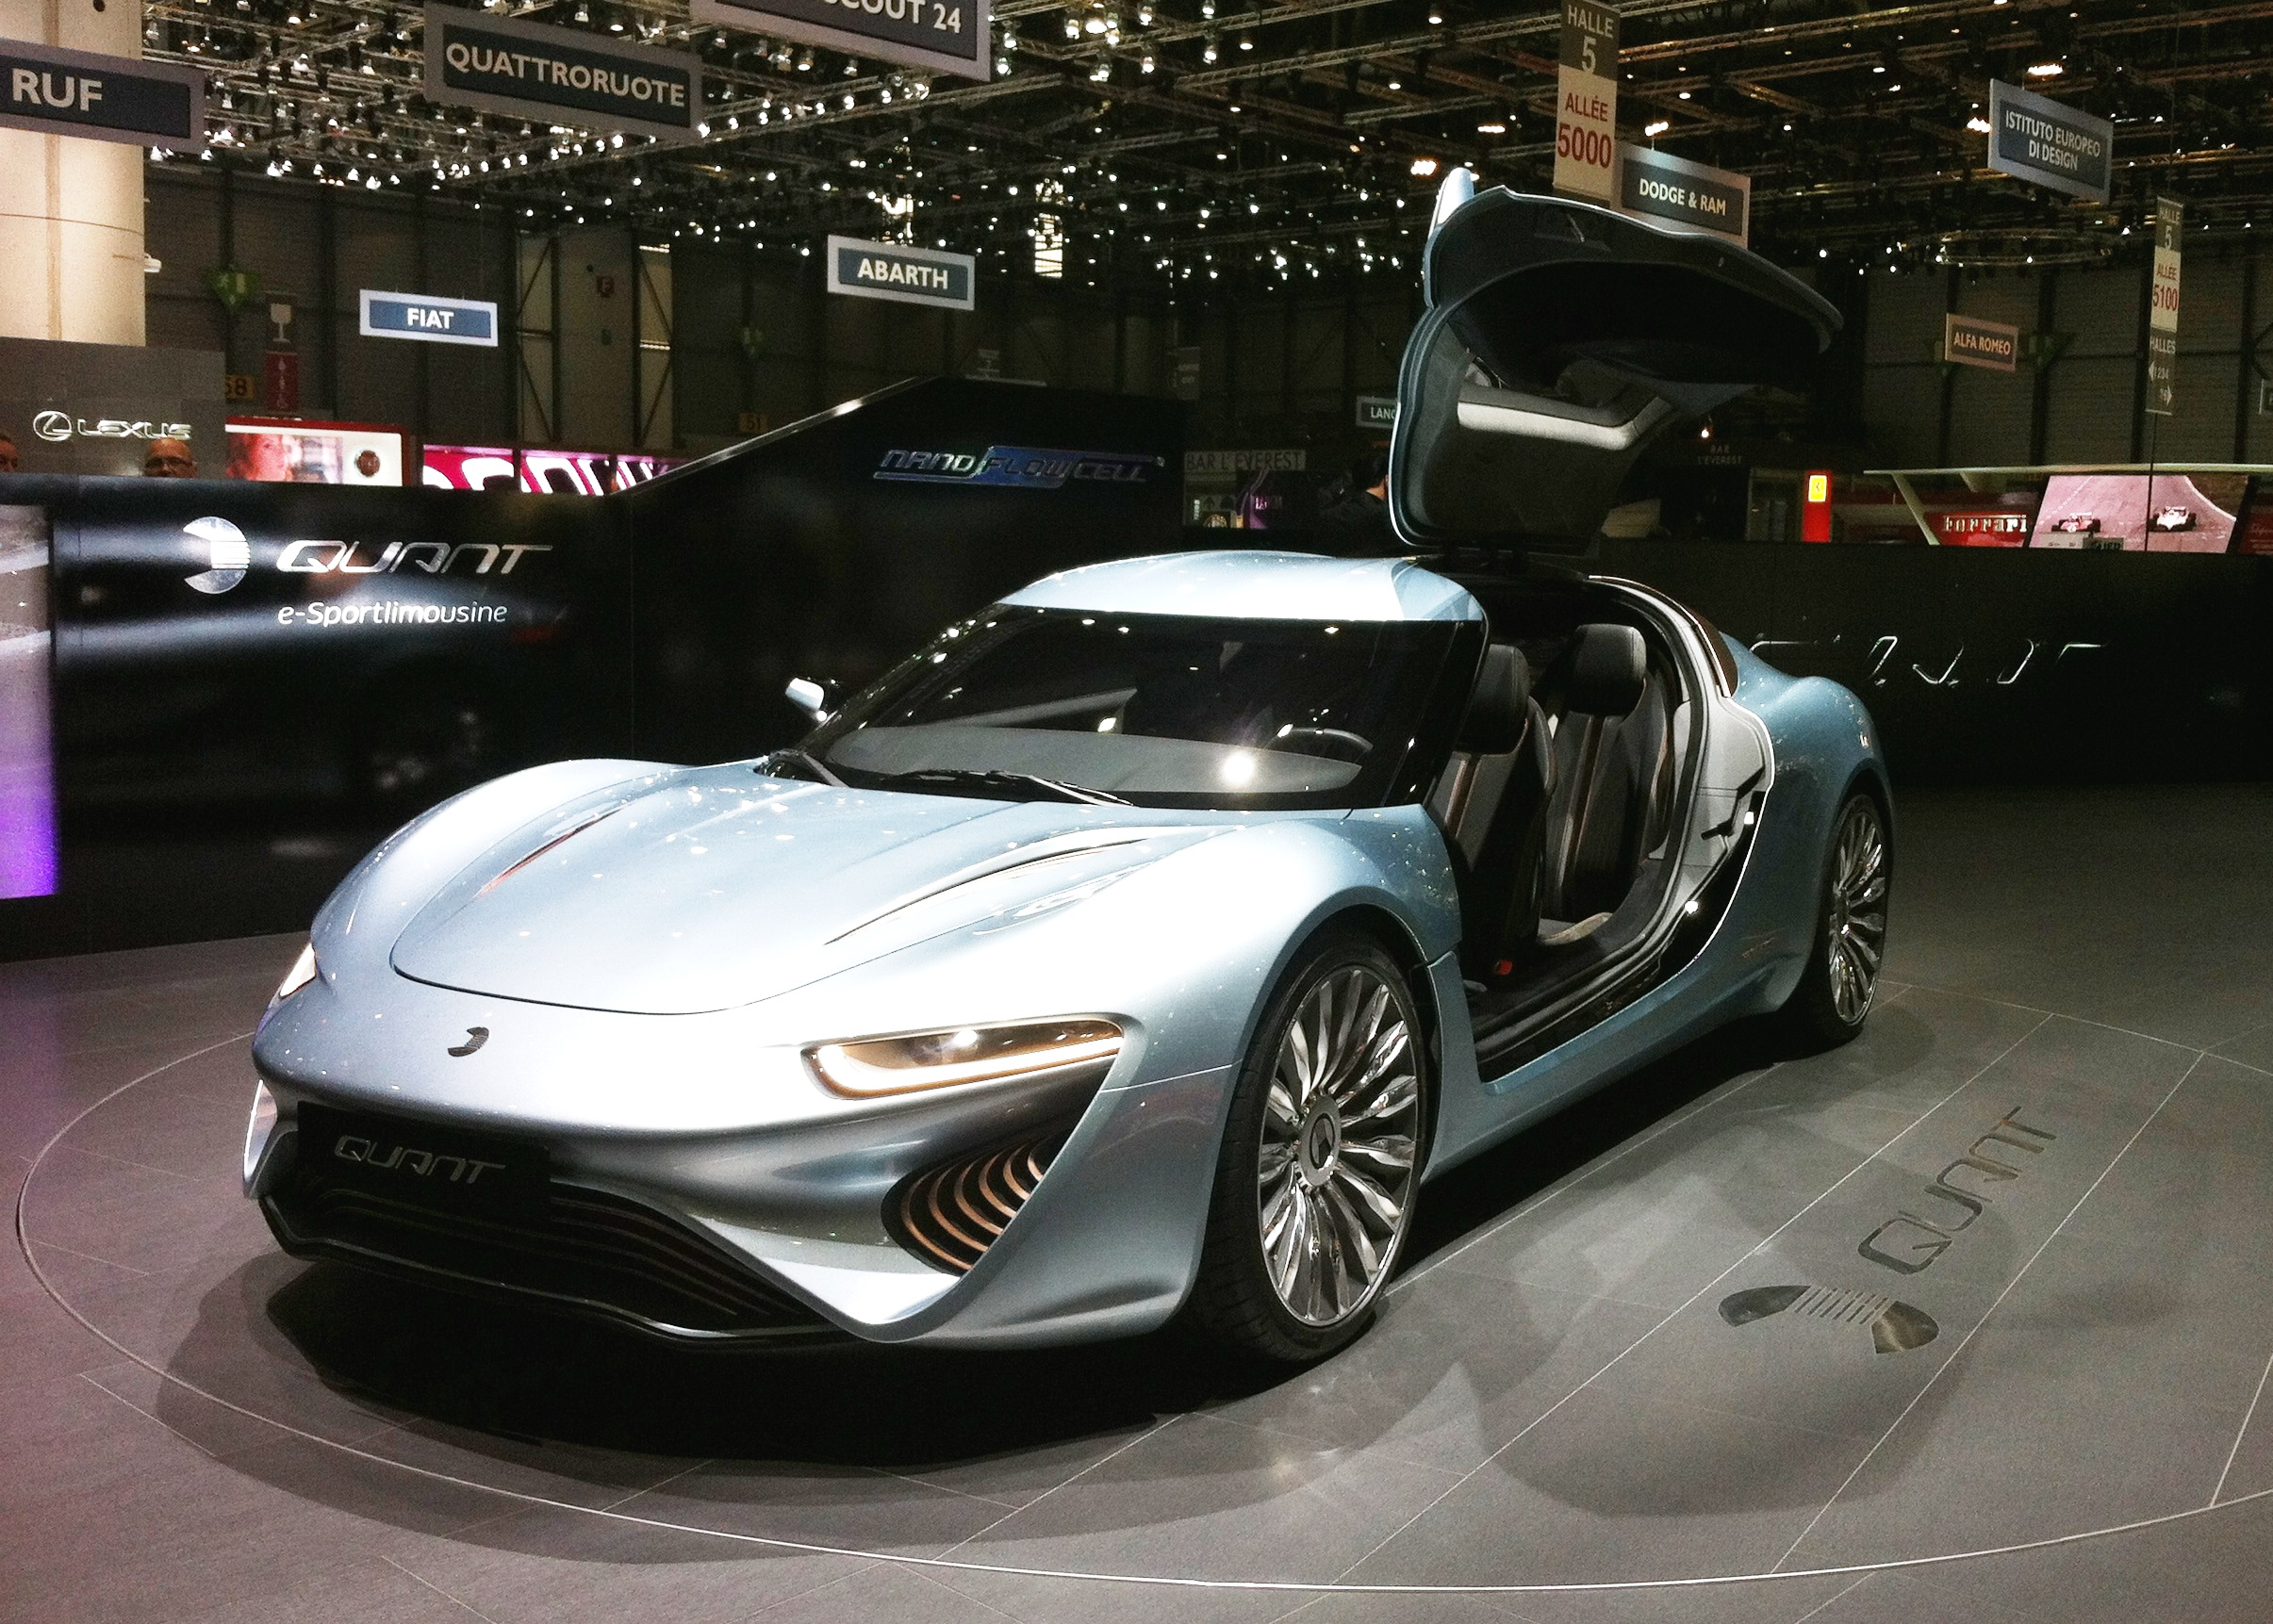 https://upload.wikimedia.org/wikipedia/commons/7/71/NanoFlowcell_Quant_e-Sportlimousine_01.JPG